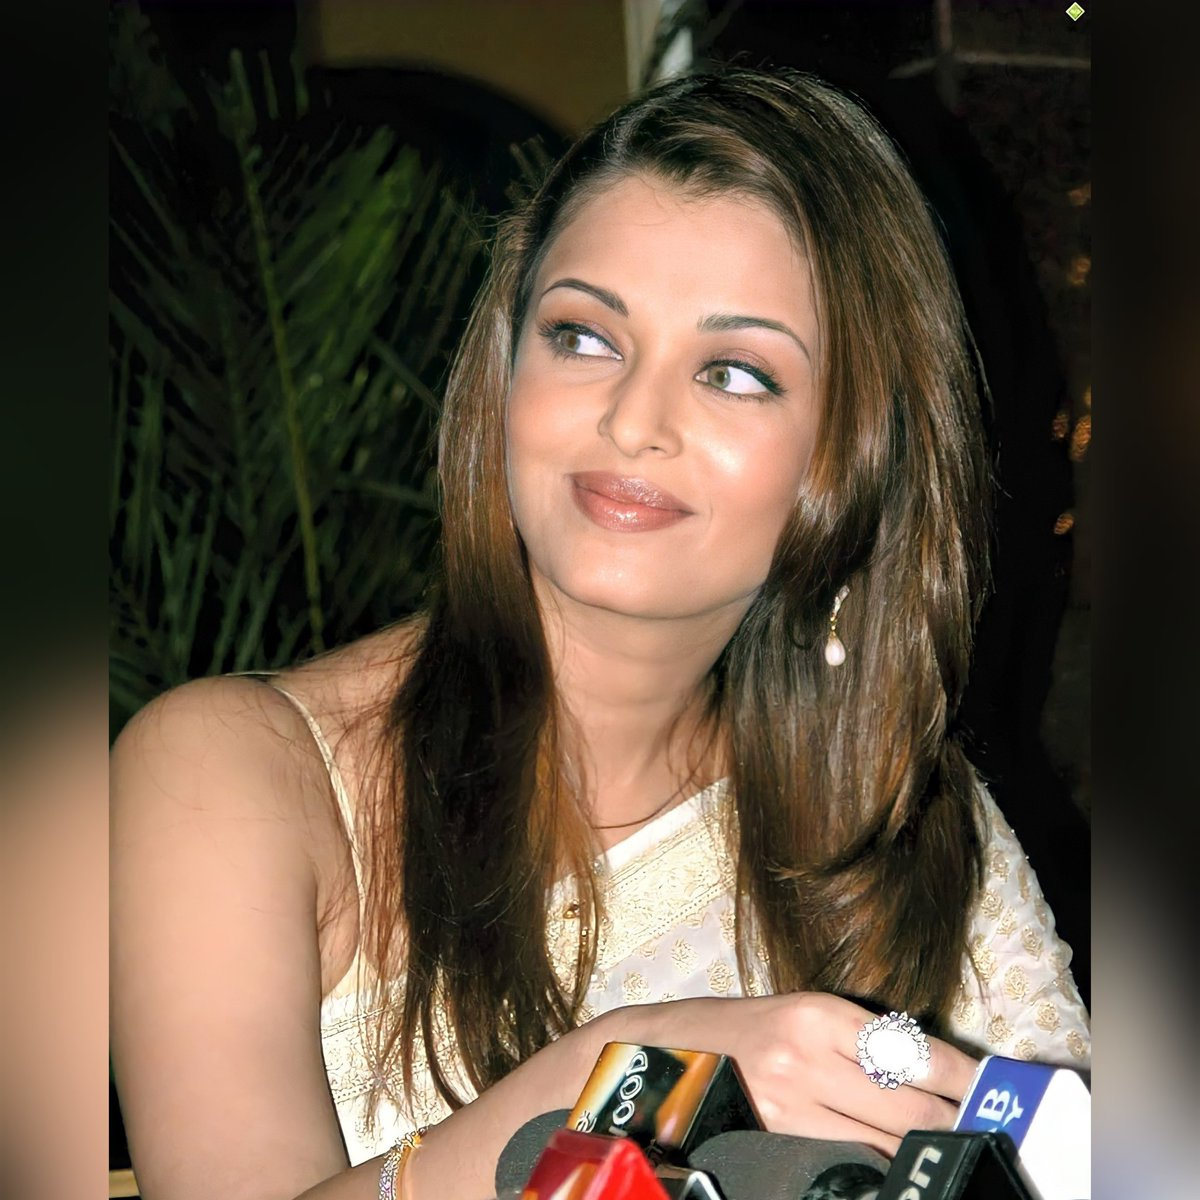 Had ETHEREALITY been asked to define. Am sure, #beautiful #AishwaryaRaiBachchan 's name must pop up first in our brain. To visualise and write a paragraph.   Here in she is at Bride and Prejudice Delhi Press Conference.